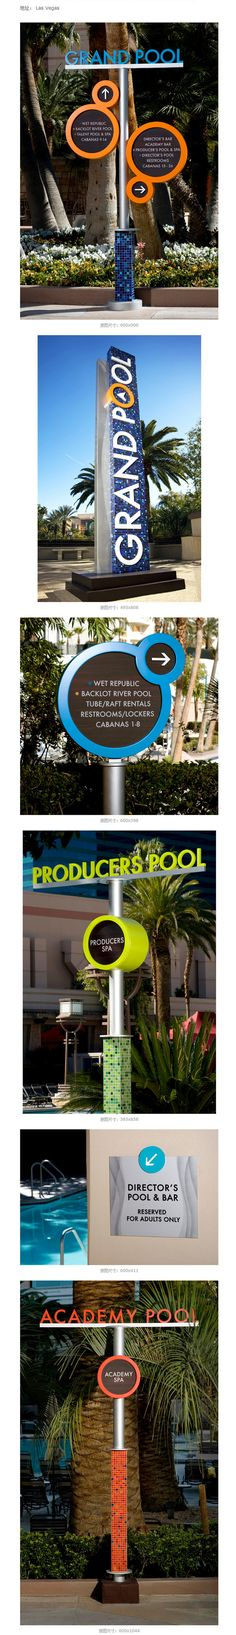 MGM pool signage by Visual Asylum